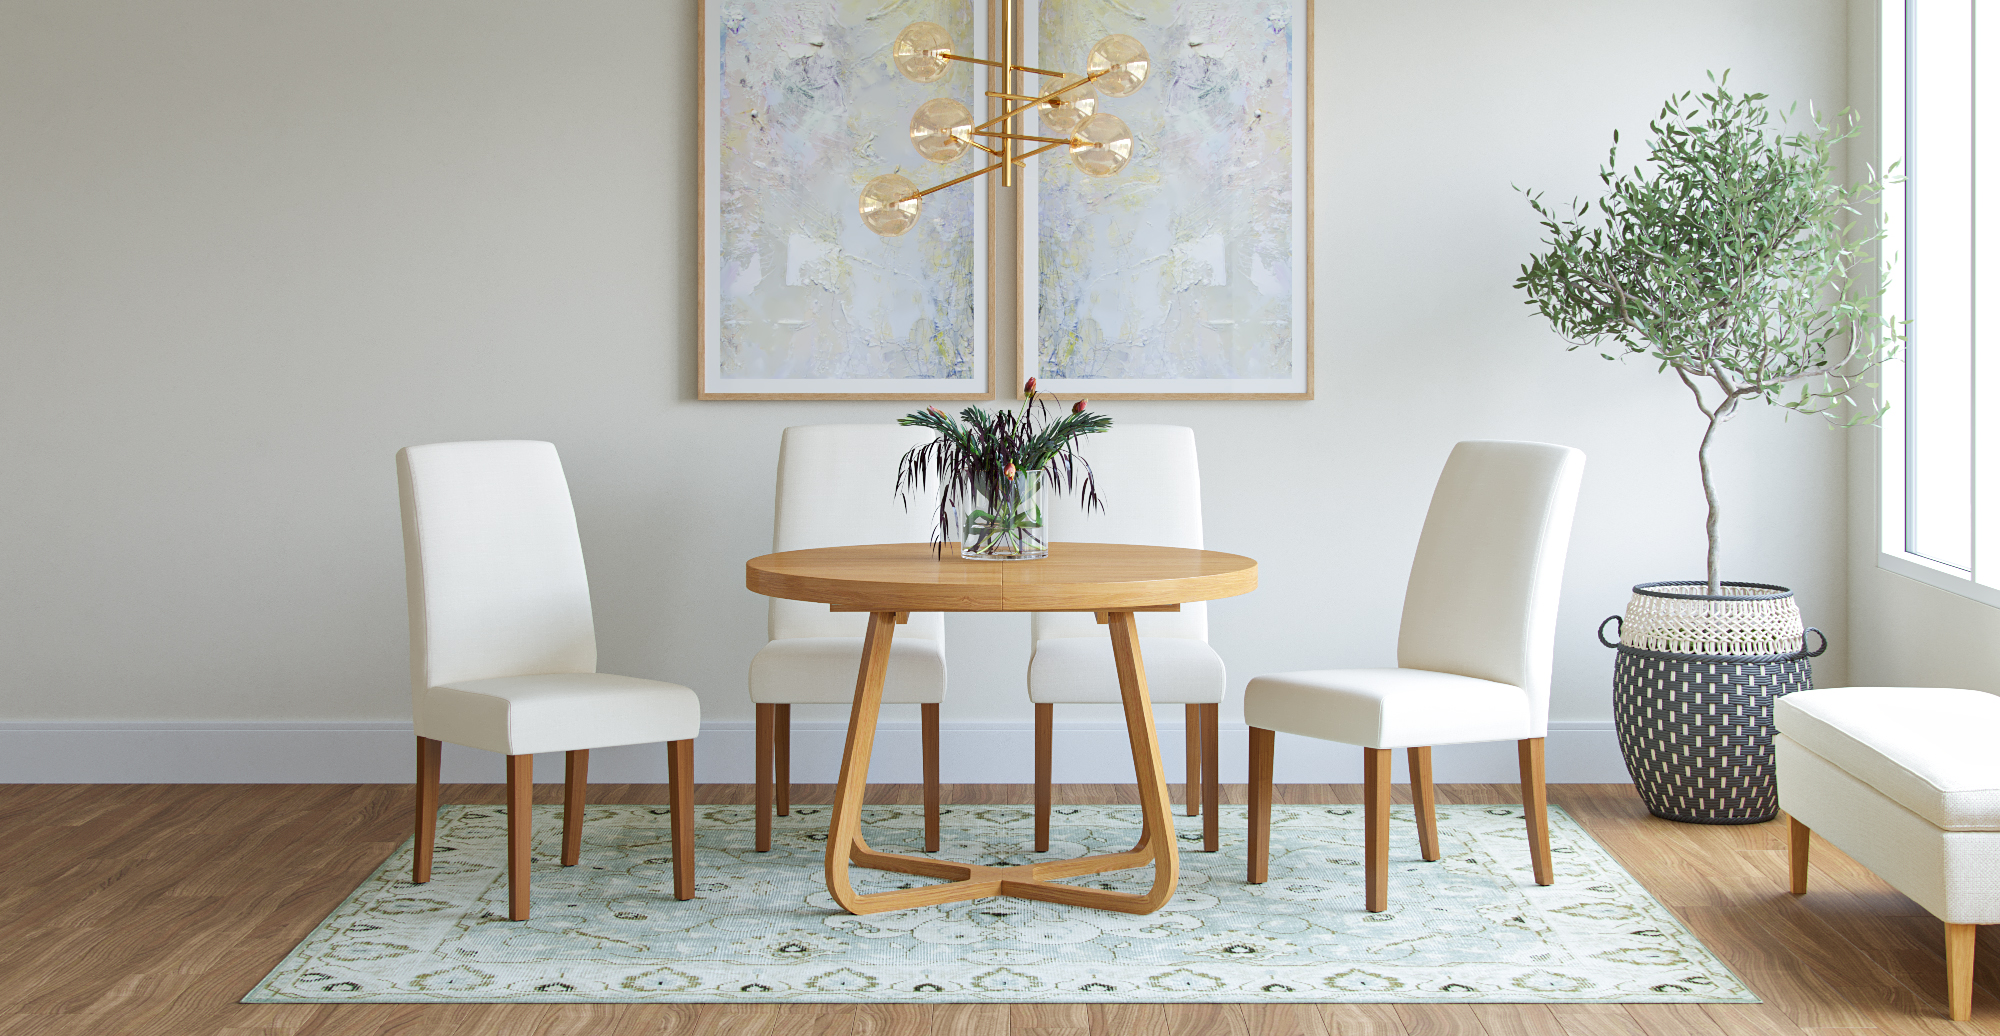 Brosa Grace Set of 2 Dining Chairs styled in classic traditional dining room